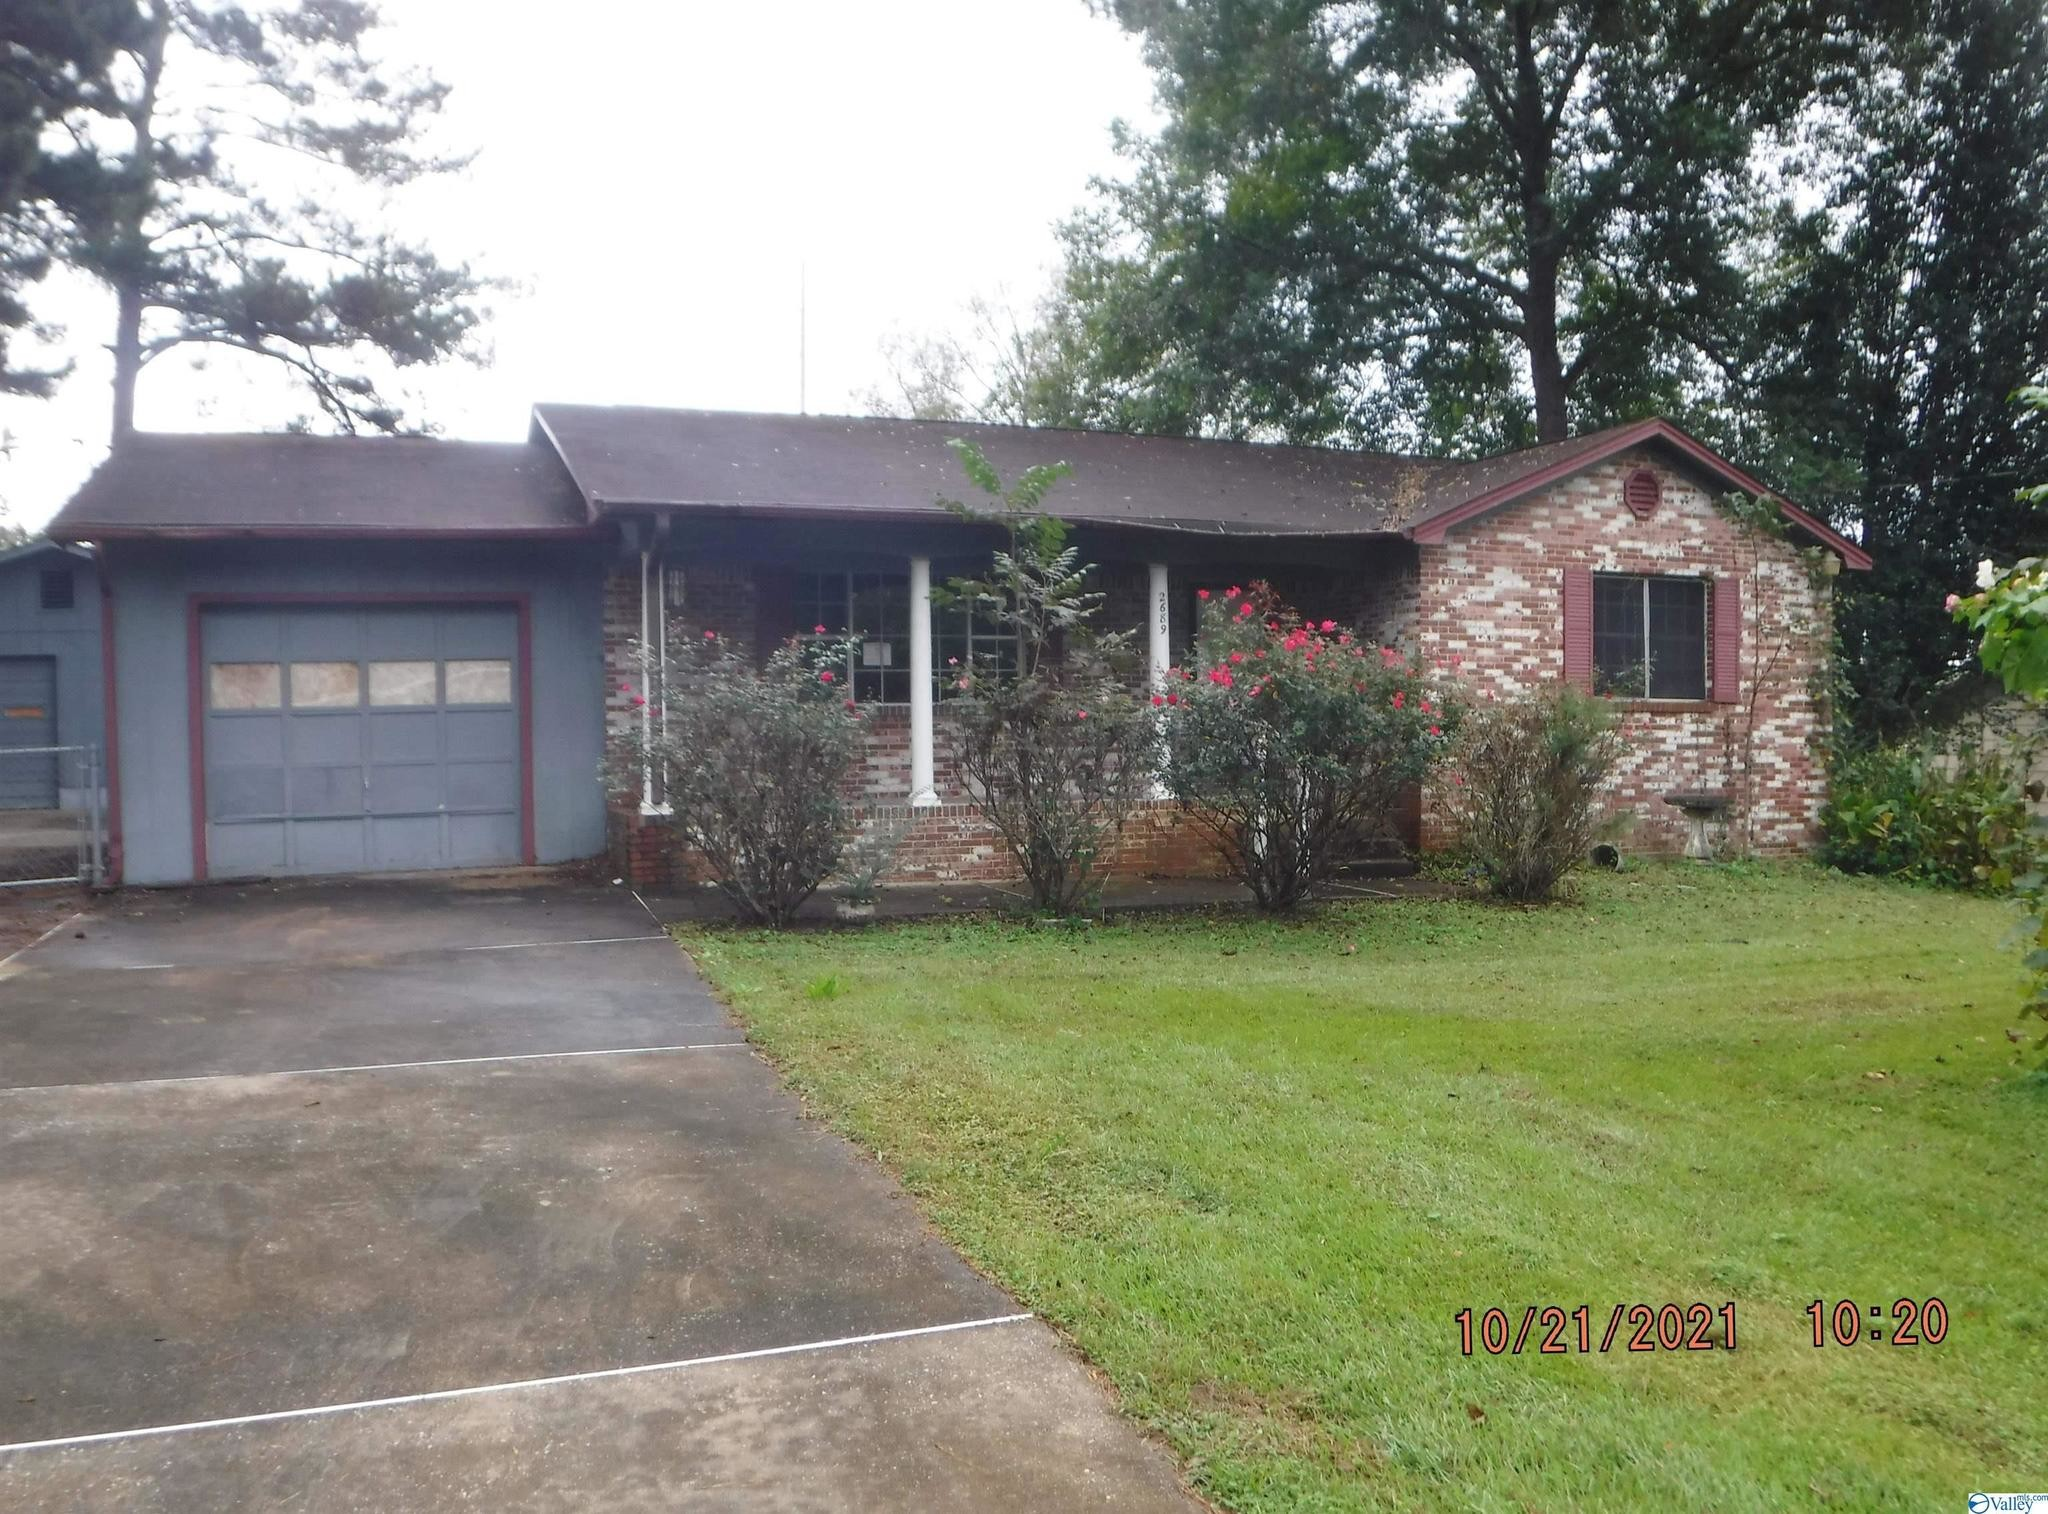 4-Bedroom House In Southside